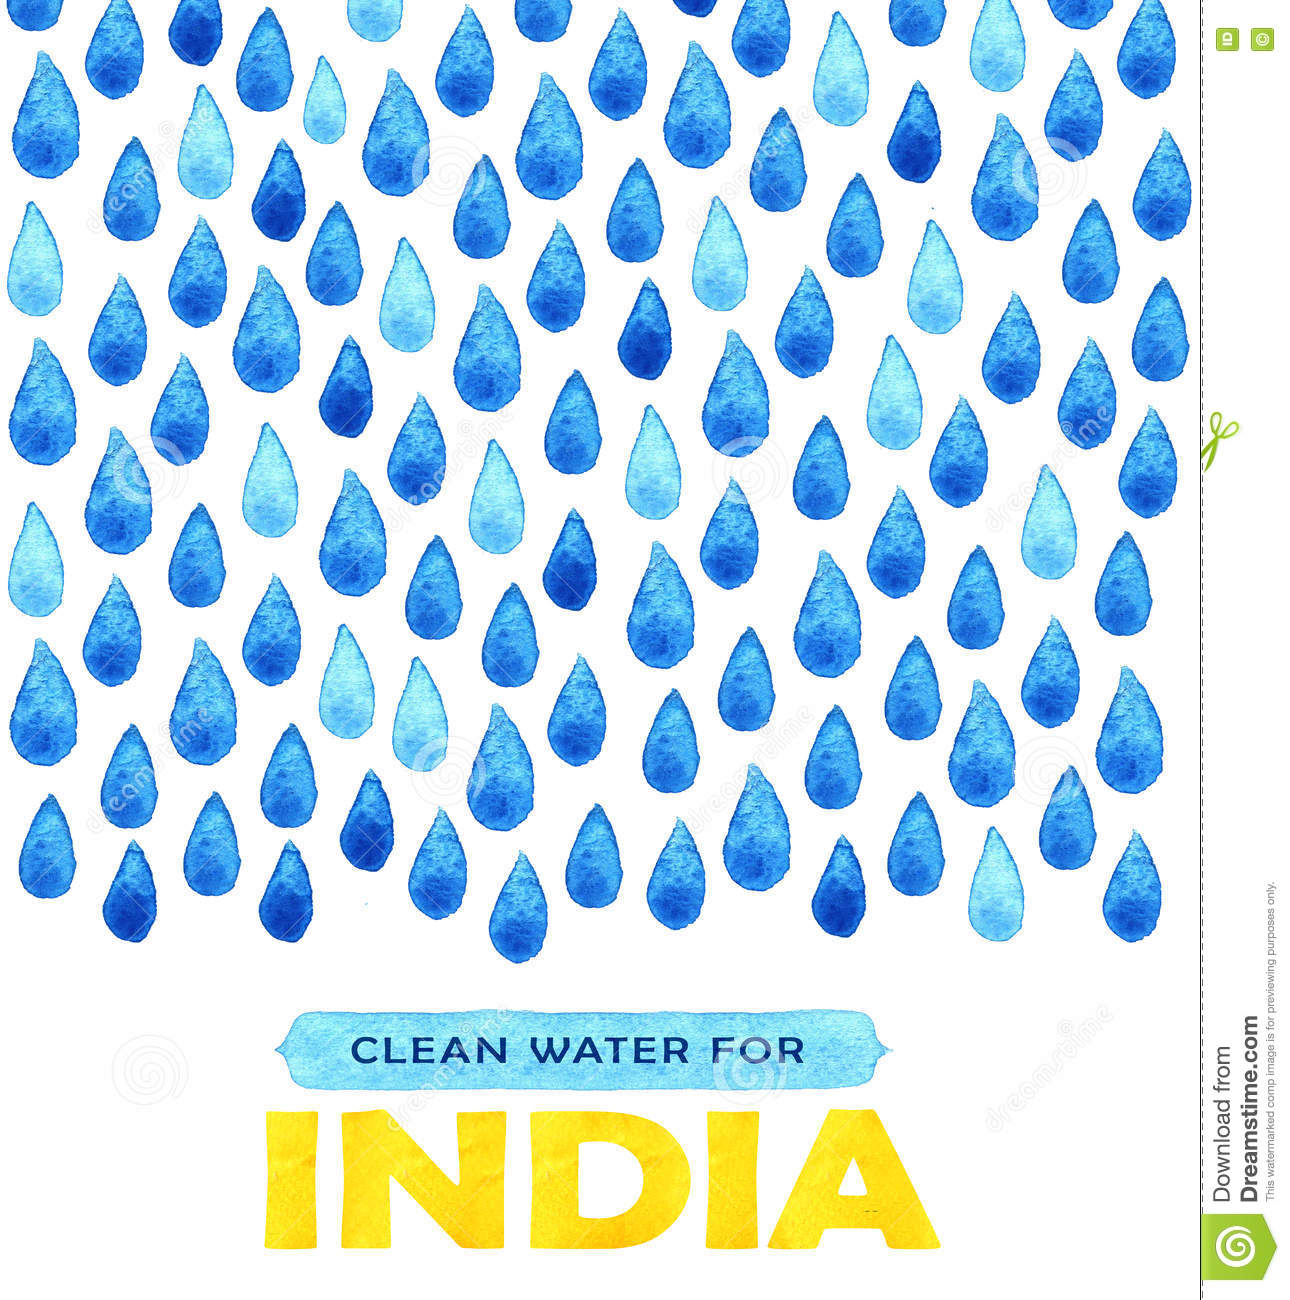 Charity Clean Water Poster  Social Illustration About Problems India